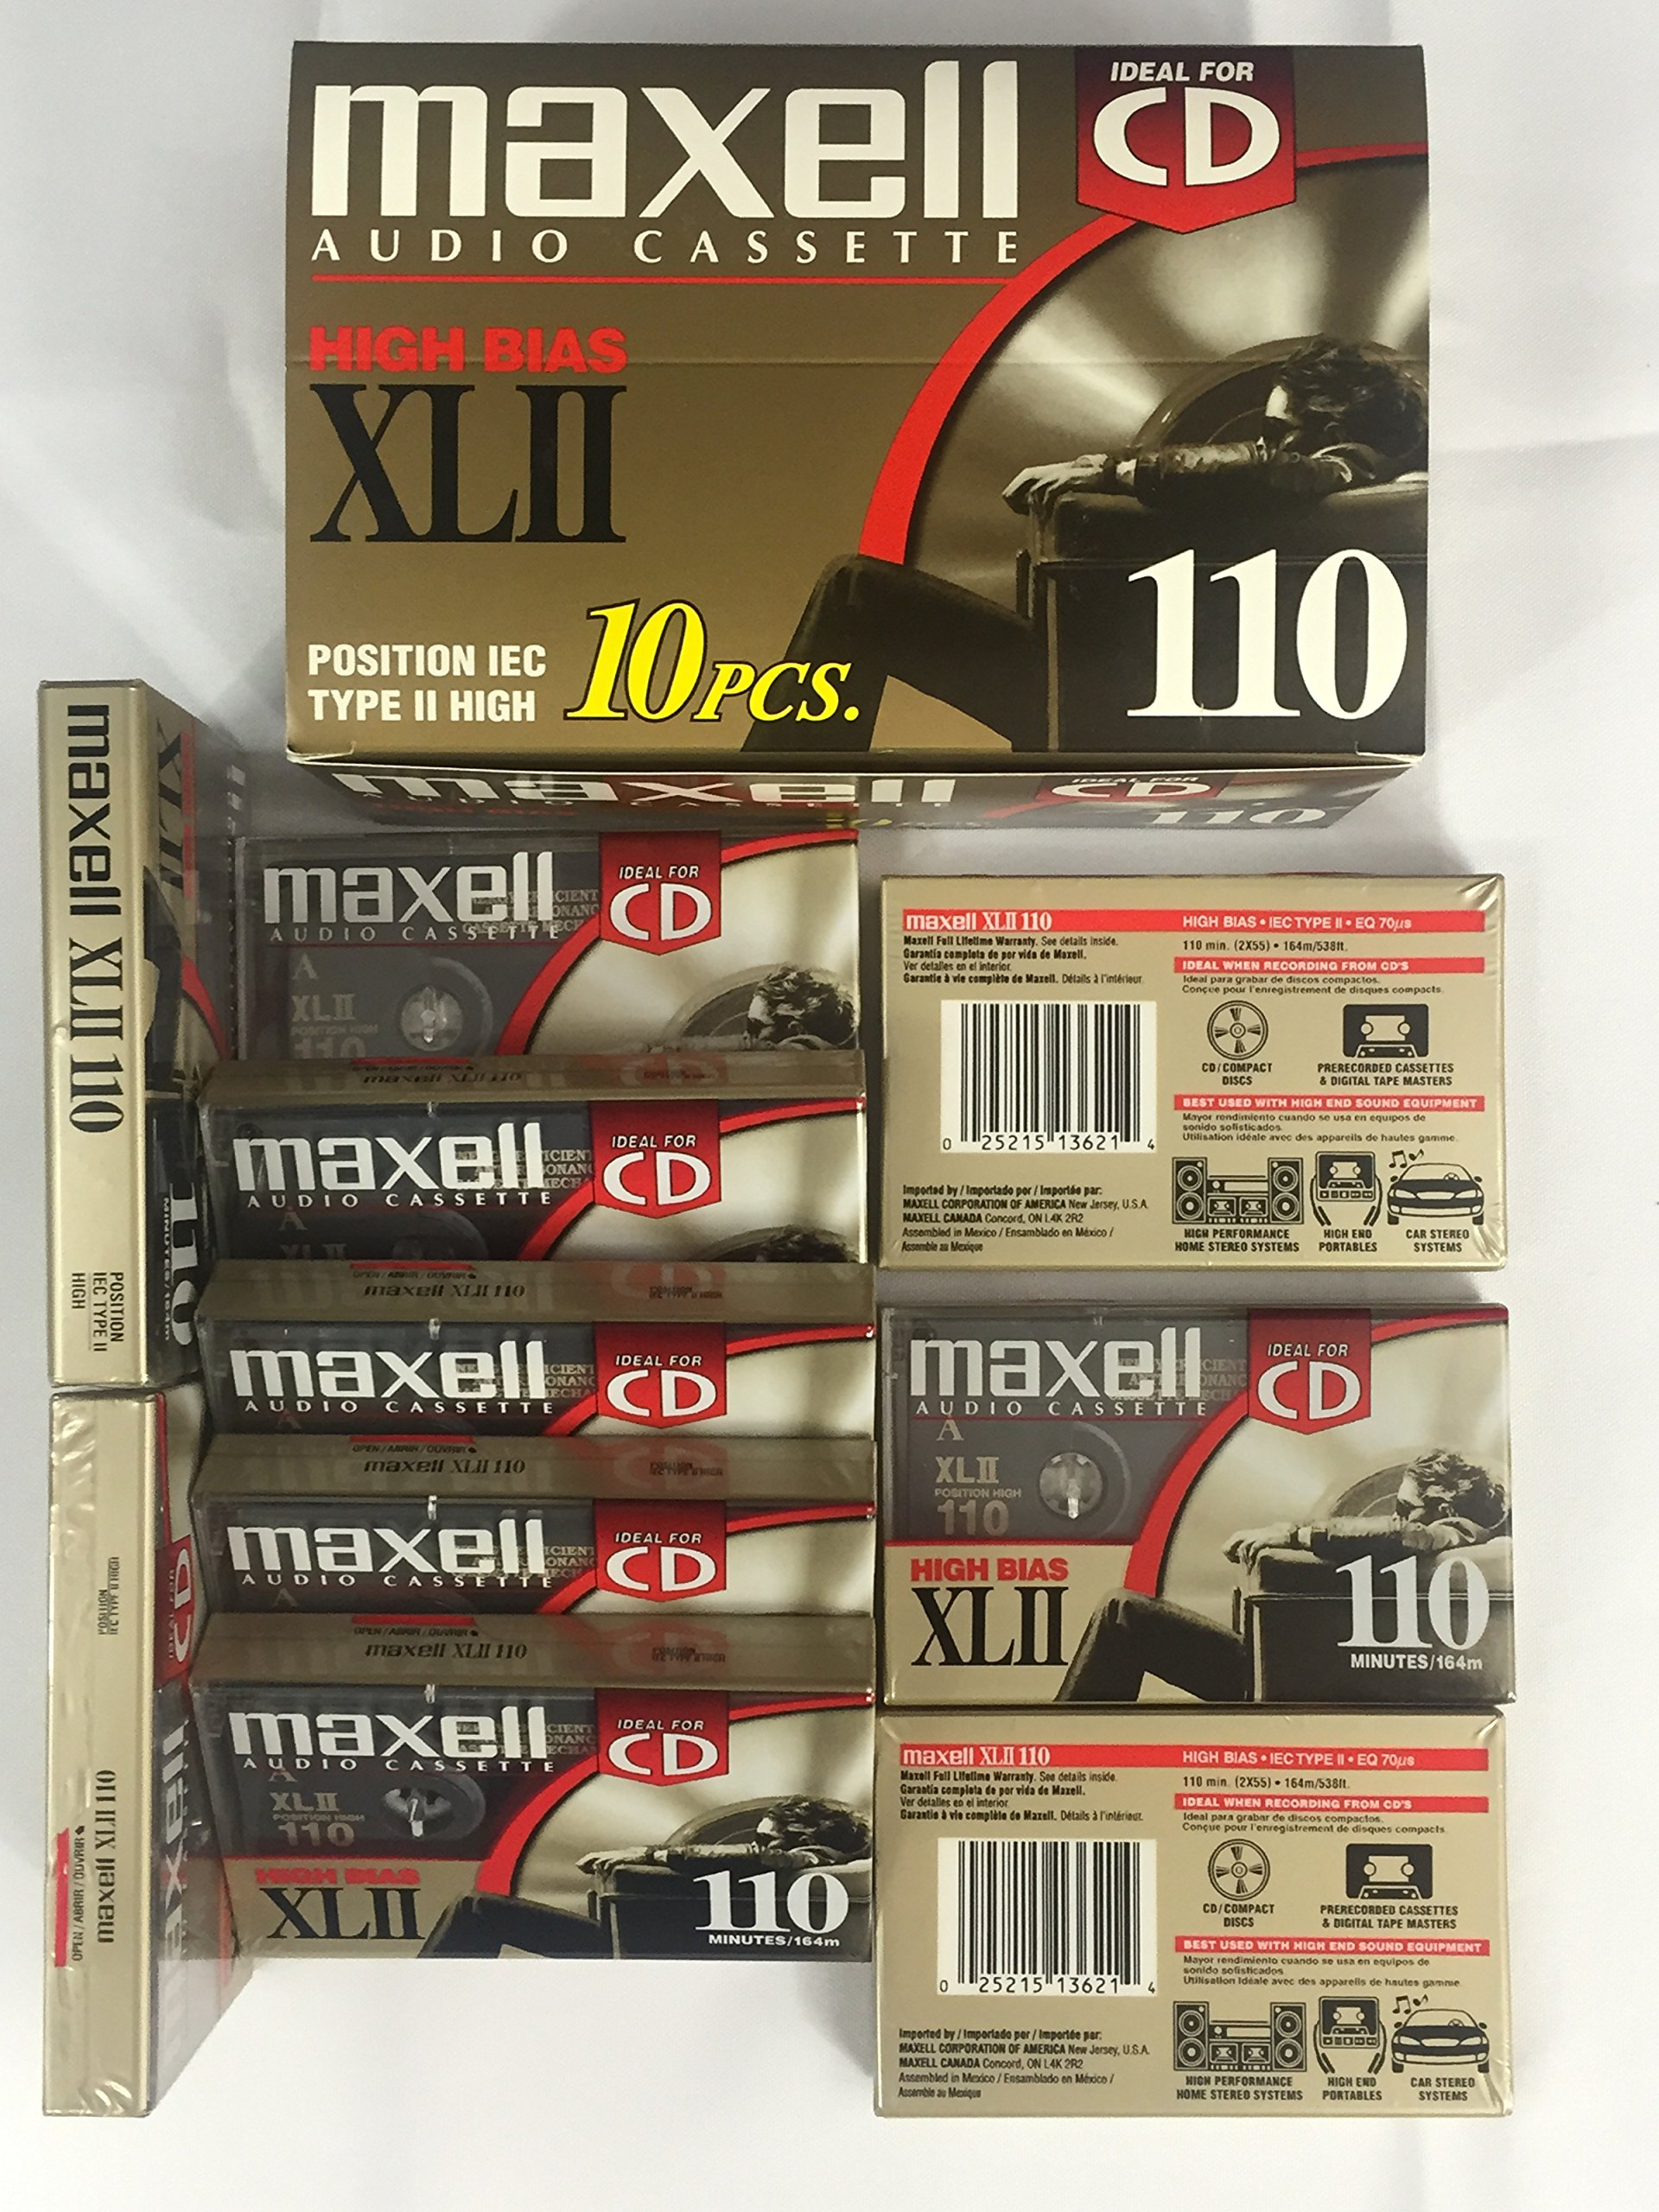 Maxell C110 Cassette XLII Box of 10 by Maxell